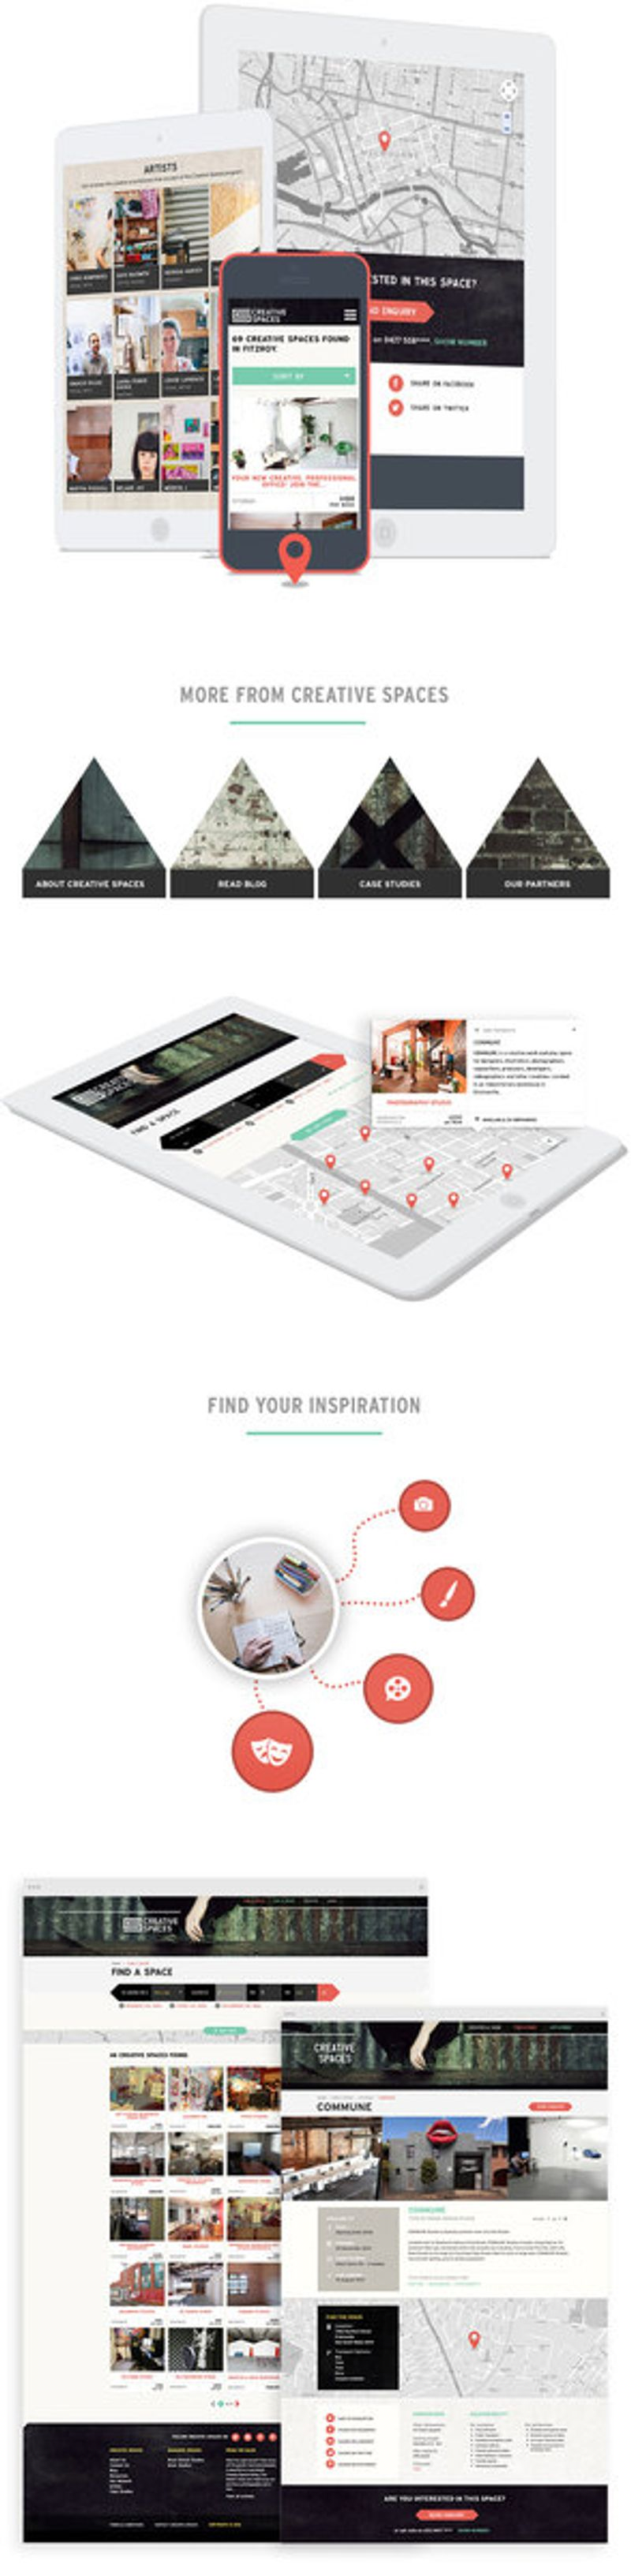 CREATIVE SPACES RESPONSIVE WEBSITE APPLICATION